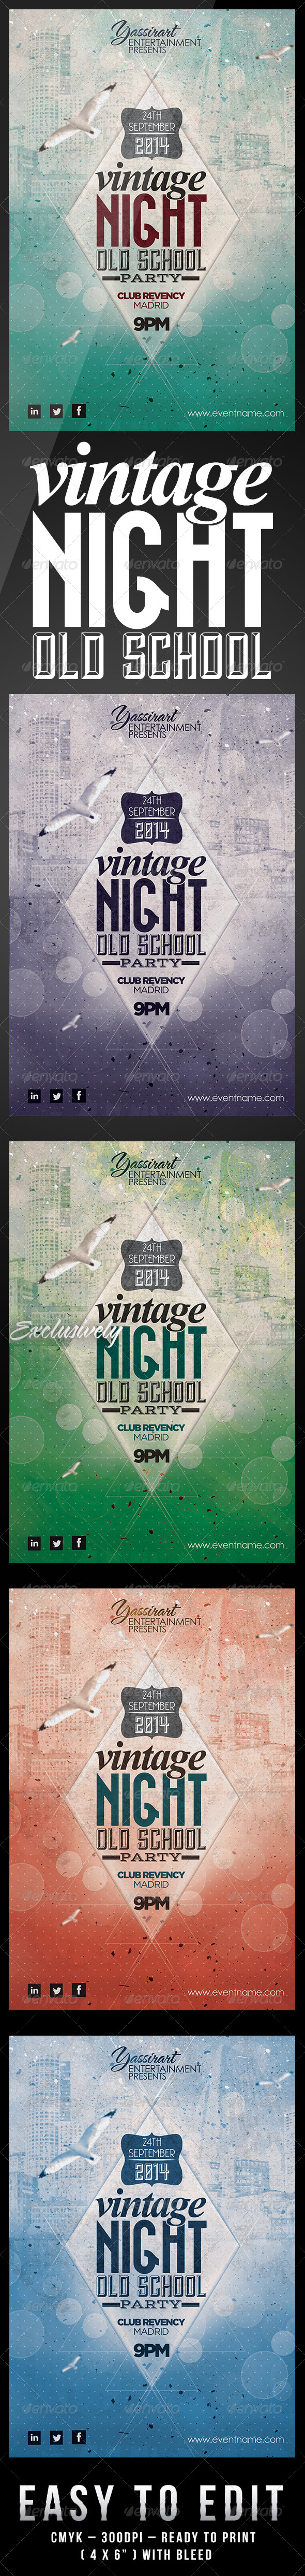 Vintage Night Old School Party Flyer Template - Clubs & Parties Events